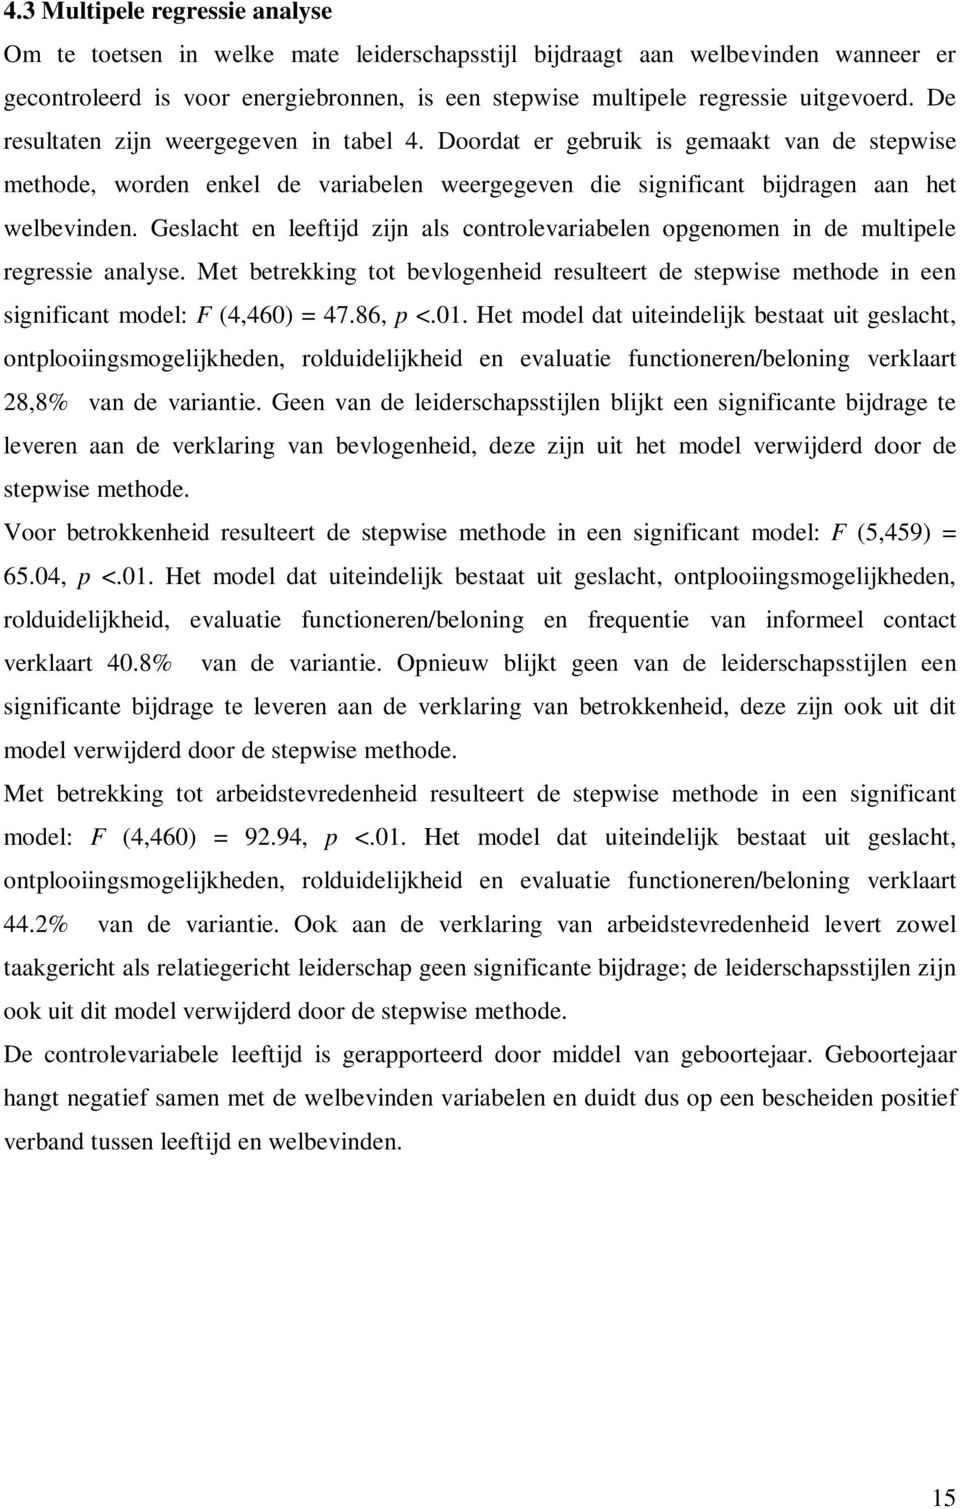 Geslacht en leeftijd zijn als controlevariabelen opgenomen in de multipele regressie analyse. Met betrekking tot bevlogenheid resulteert de stepwise methode in een significant model: F (4,460) = 47.